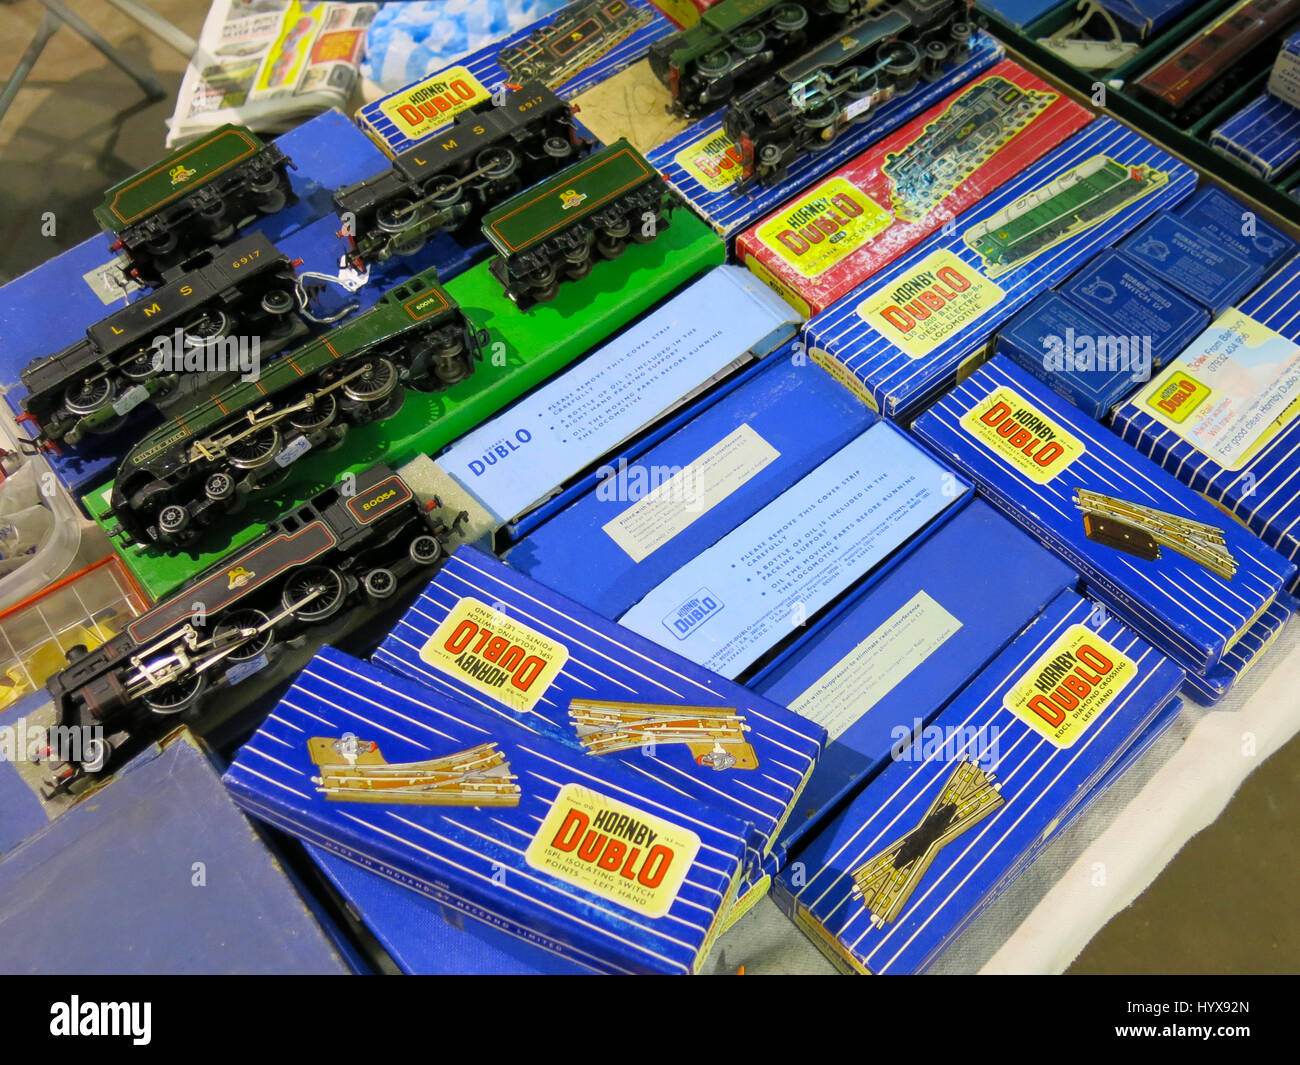 A selection of rare and collectable Hornby Dublo trains and accessories for sale at a Vintage Toy Fair at Bath & Stock Photo